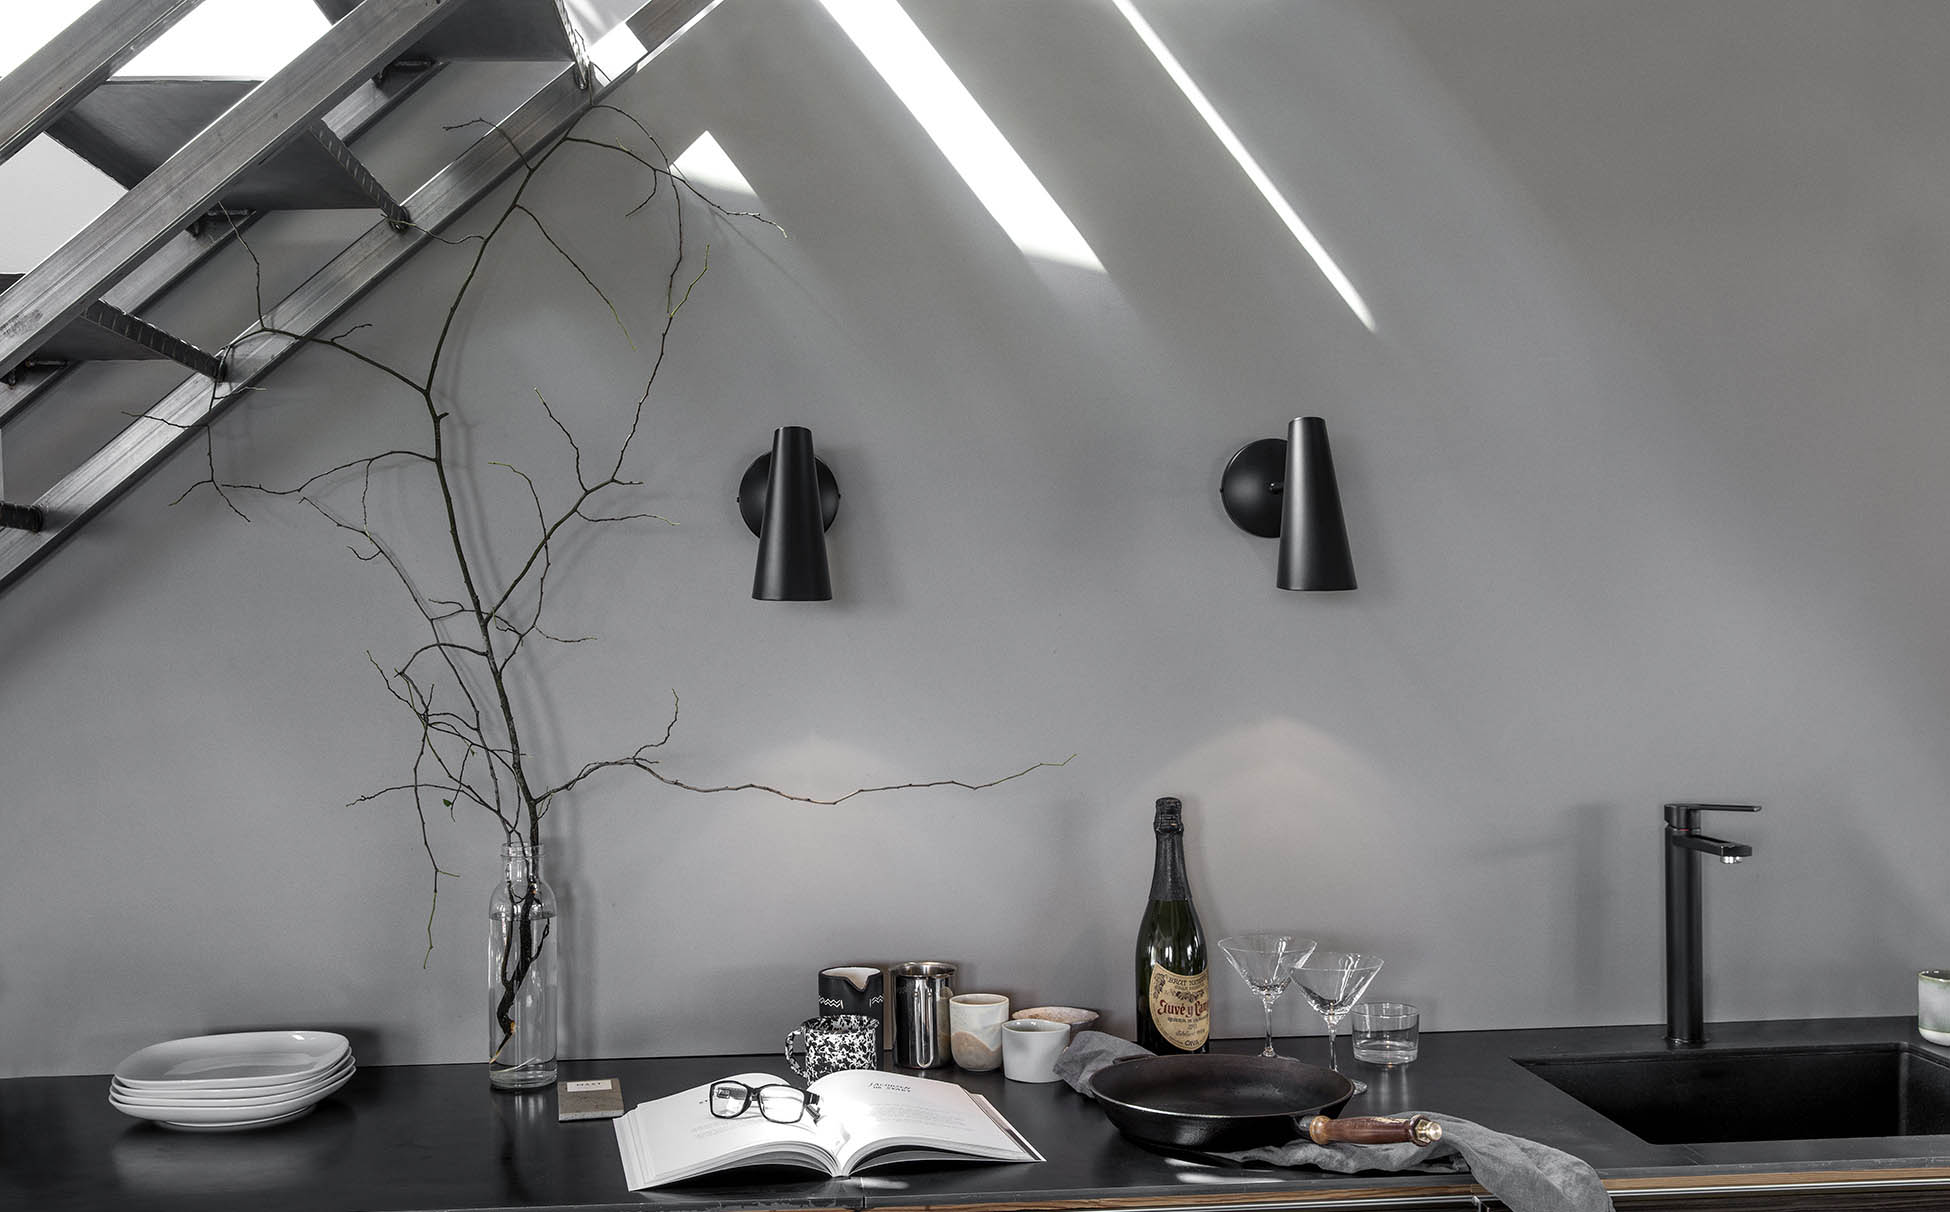 Birdy_Wall_lamp_short_All_black_Northern_wide